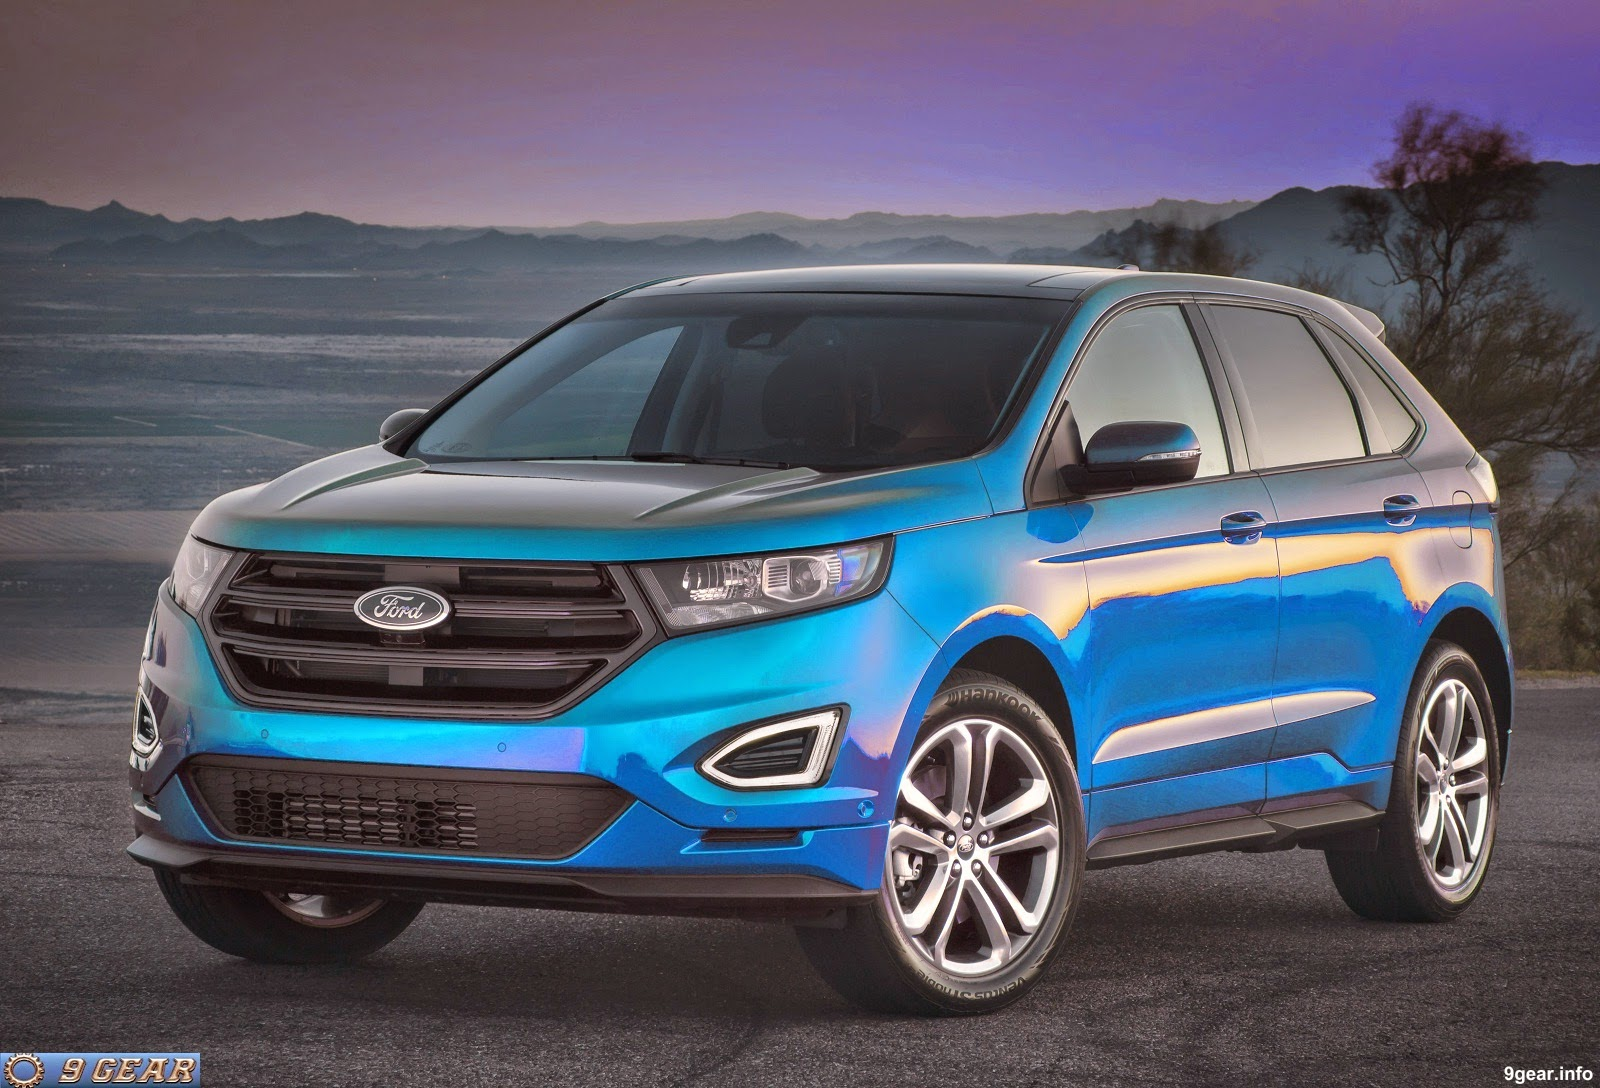 2015 ford edge suv 2 0 ecoboost 245 horsepower car reviews new car pictures for 2018 2019. Black Bedroom Furniture Sets. Home Design Ideas